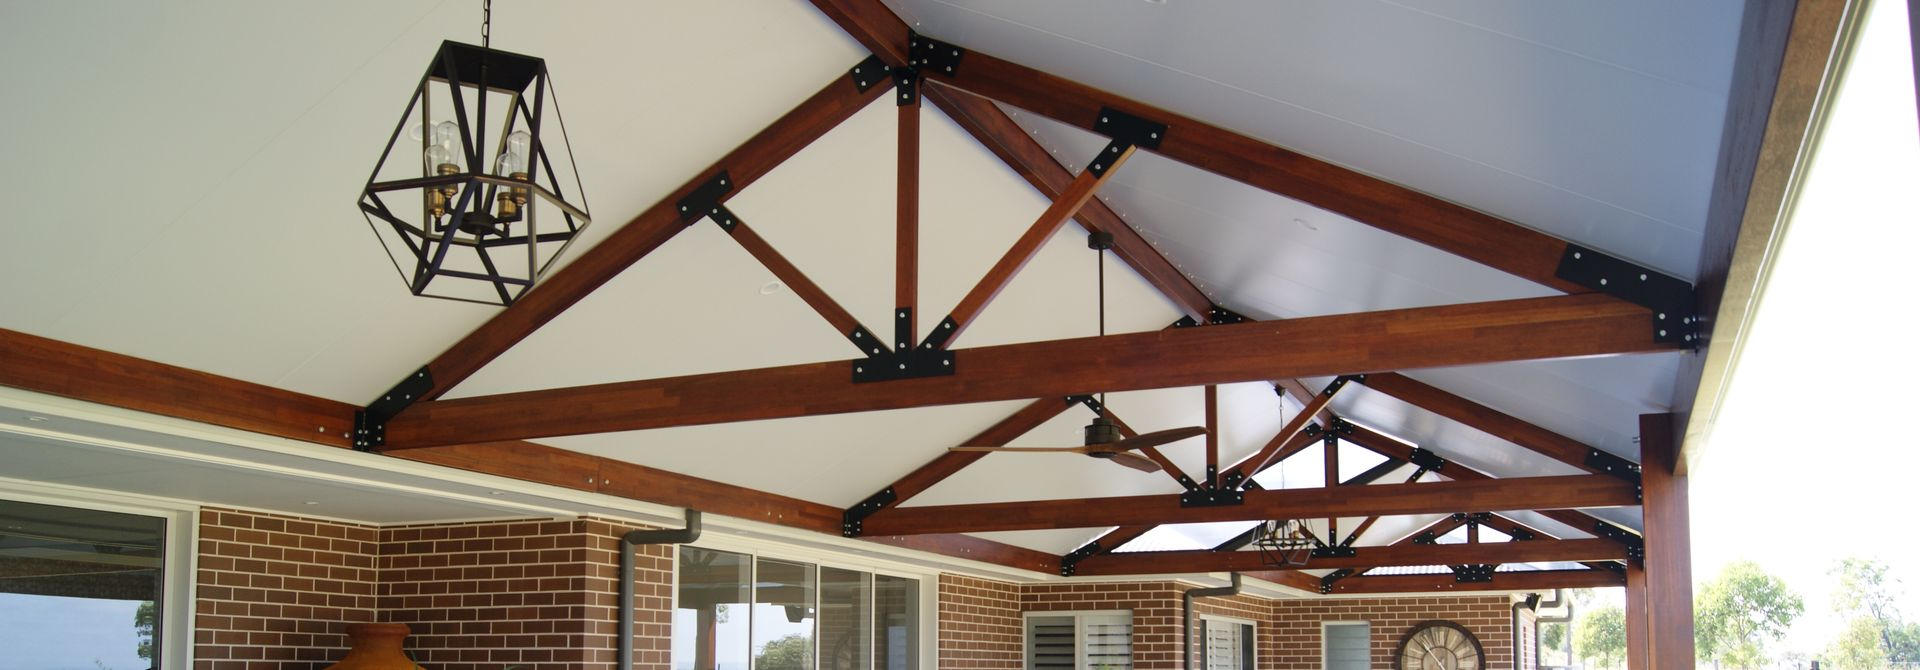 Insulated Panel Systems Sydney Versiclad